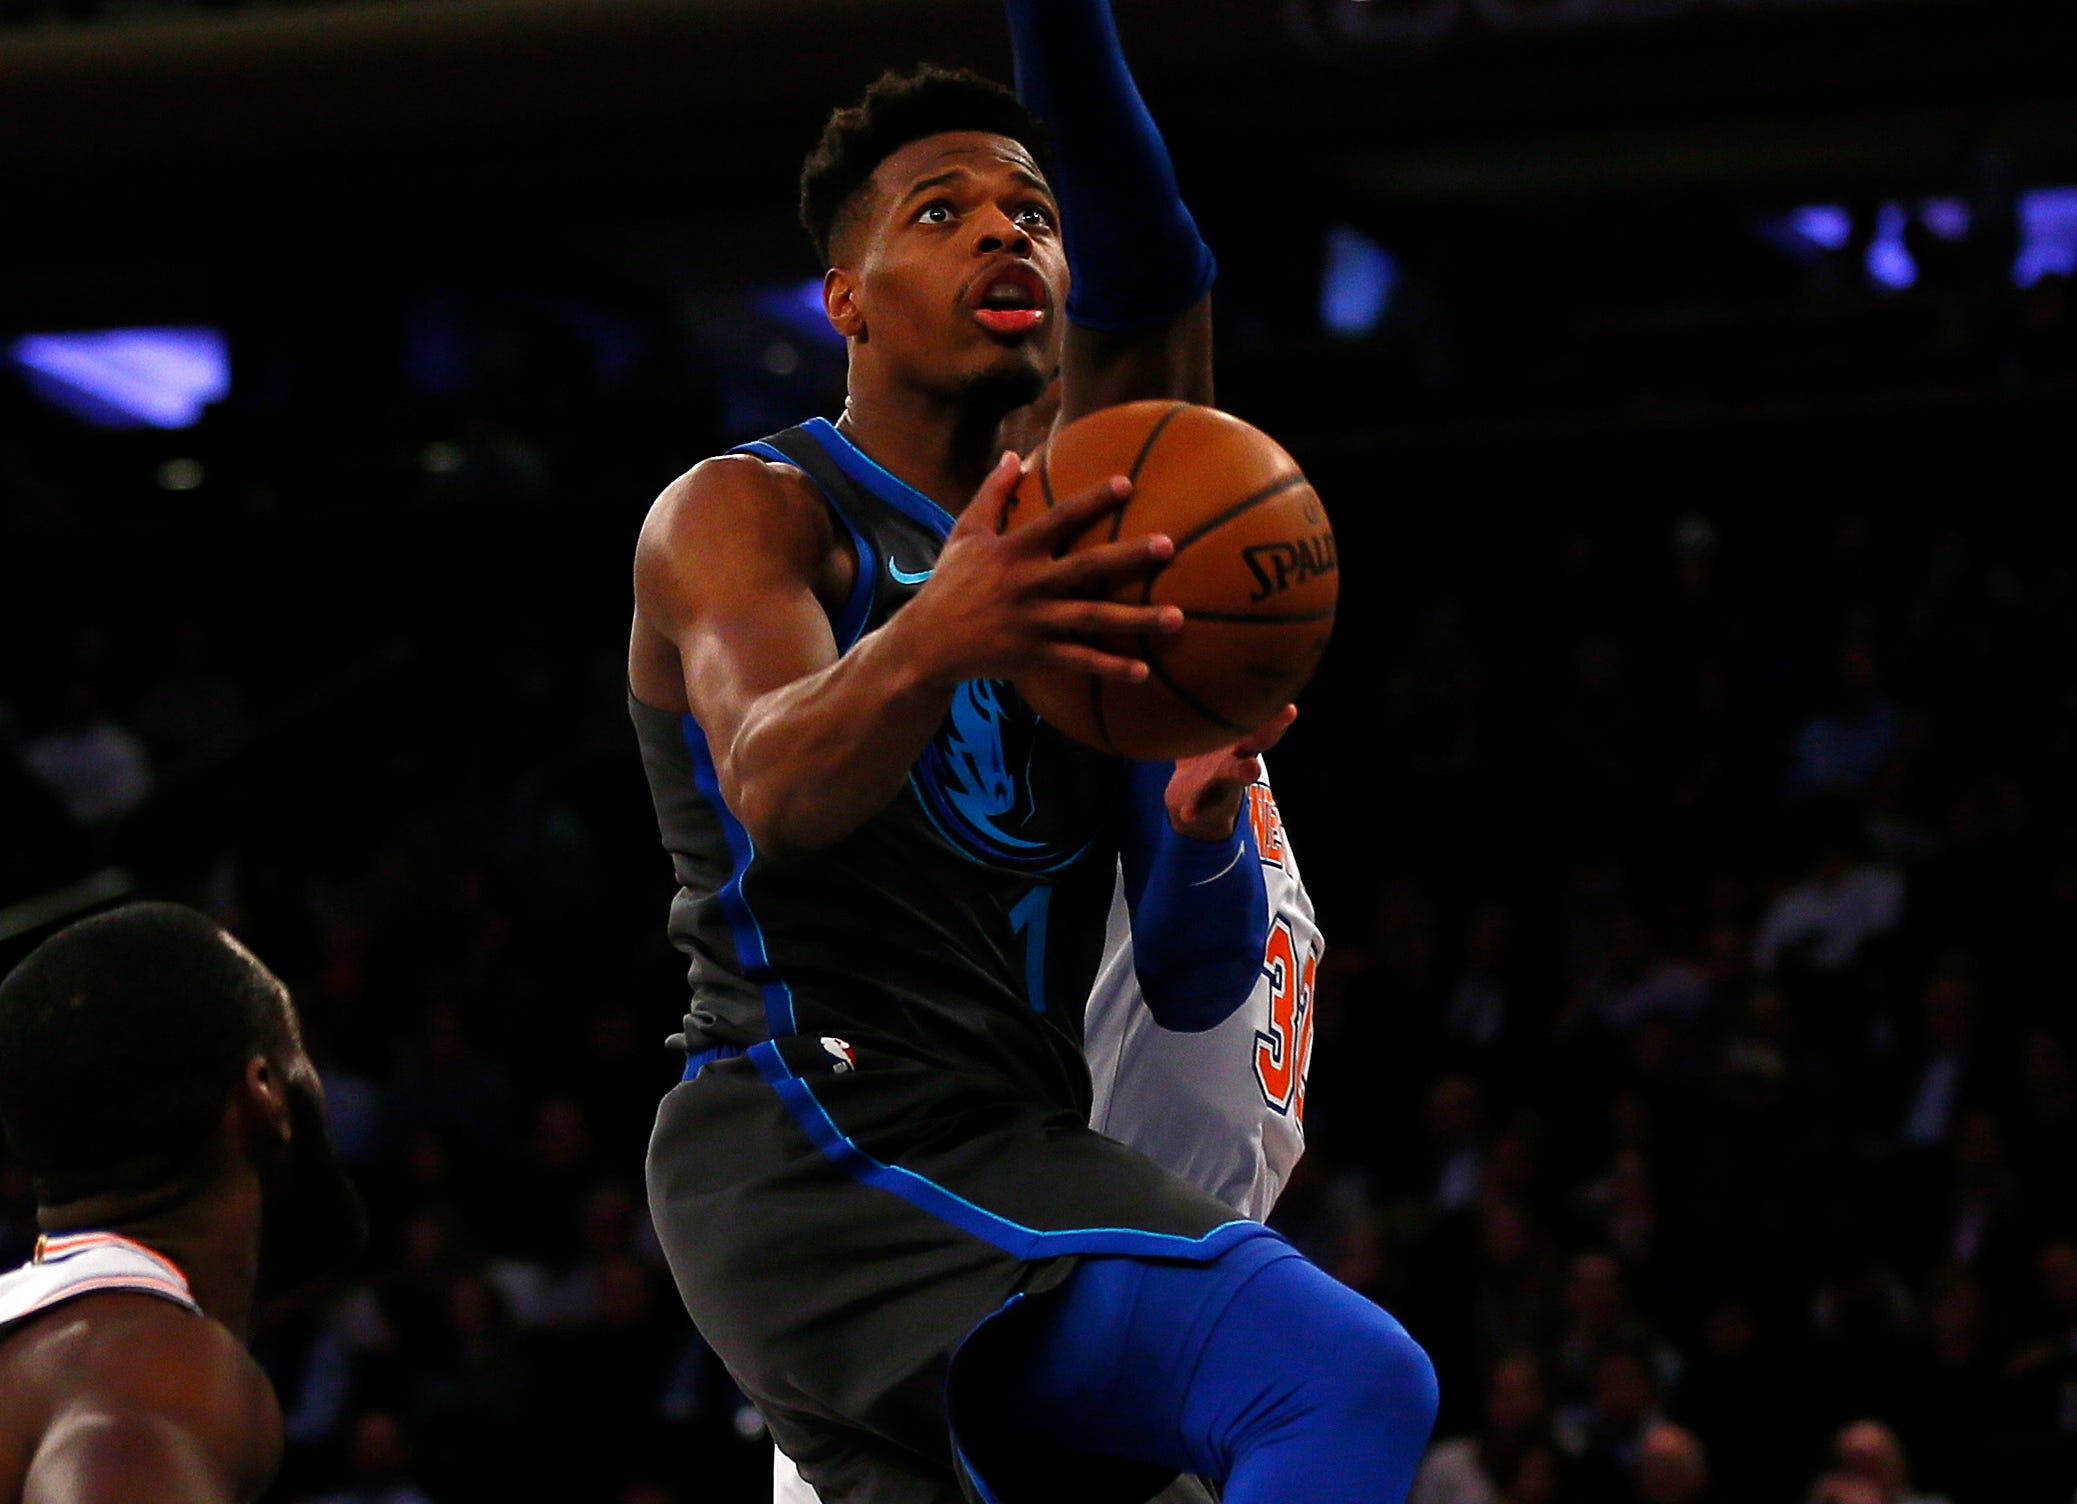 68. Dennis Smith Jr., Mavericks (Jan. 30): 13 points, 15 assists, 10 rebounds in 114-90 win over Knicks.